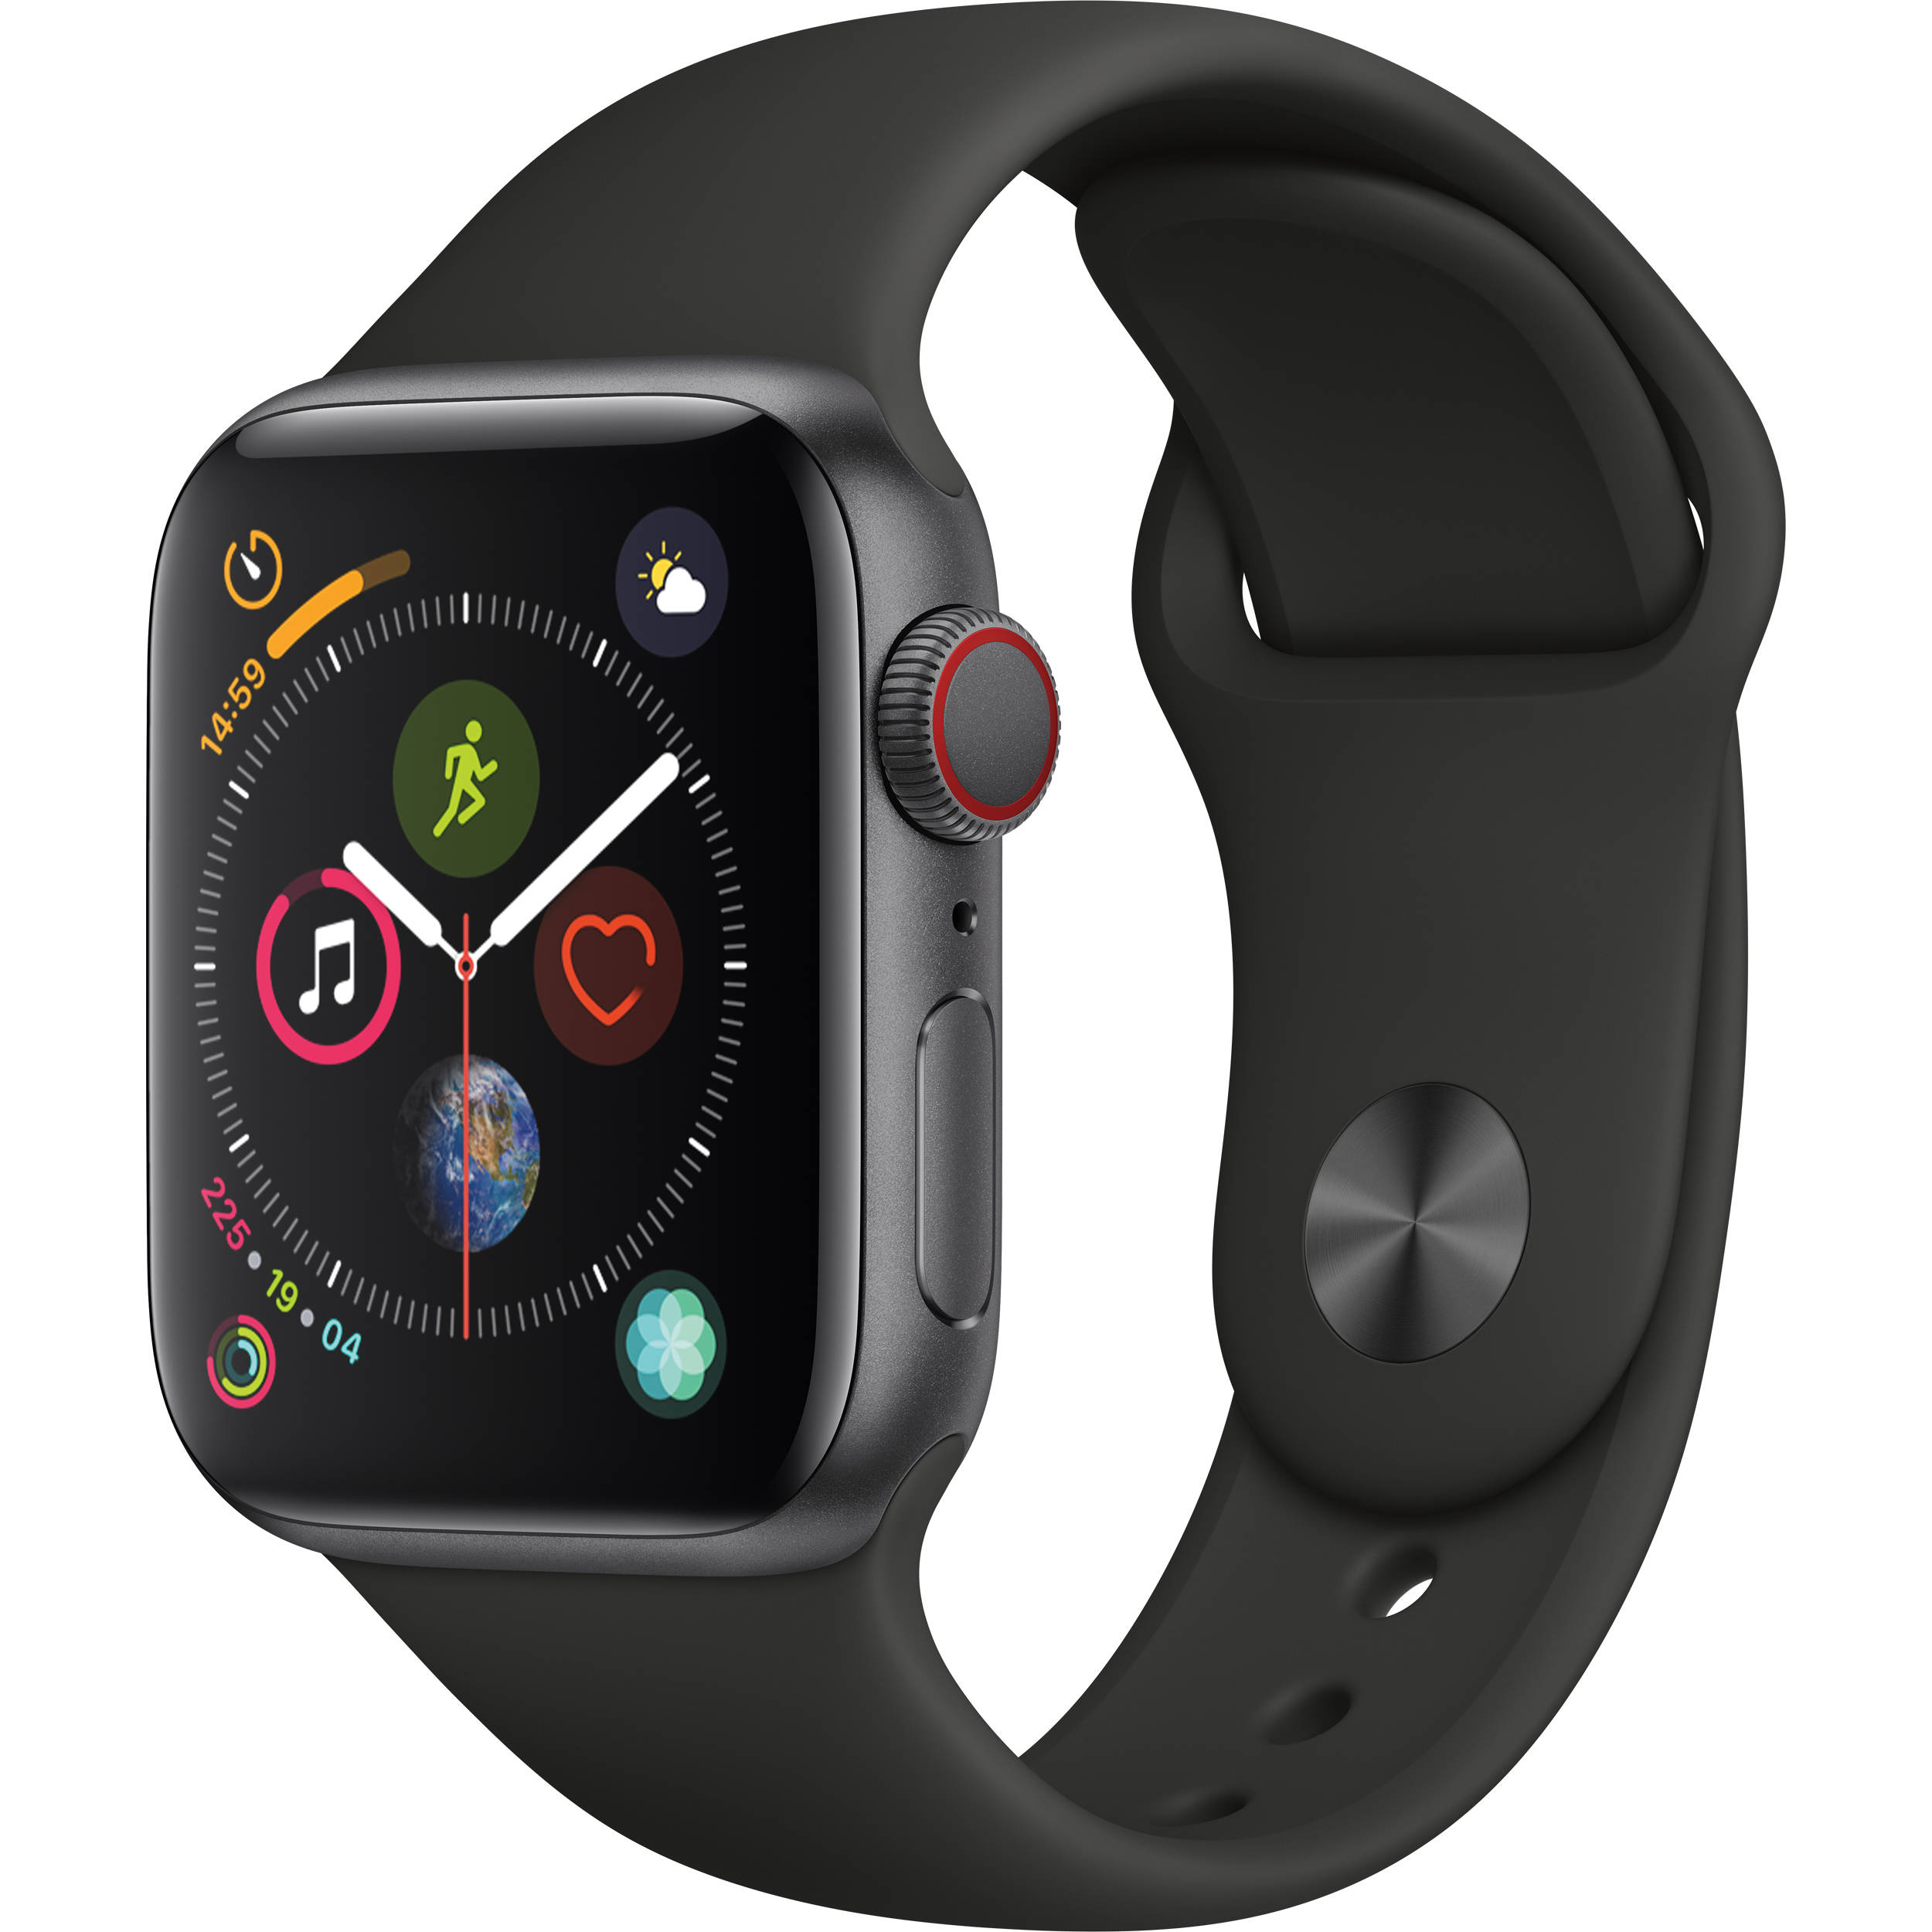 Apple Watch Series 4 black Aluminum Case with black Sport Band (GPS) 40mm Band fits 130–200mm wrists